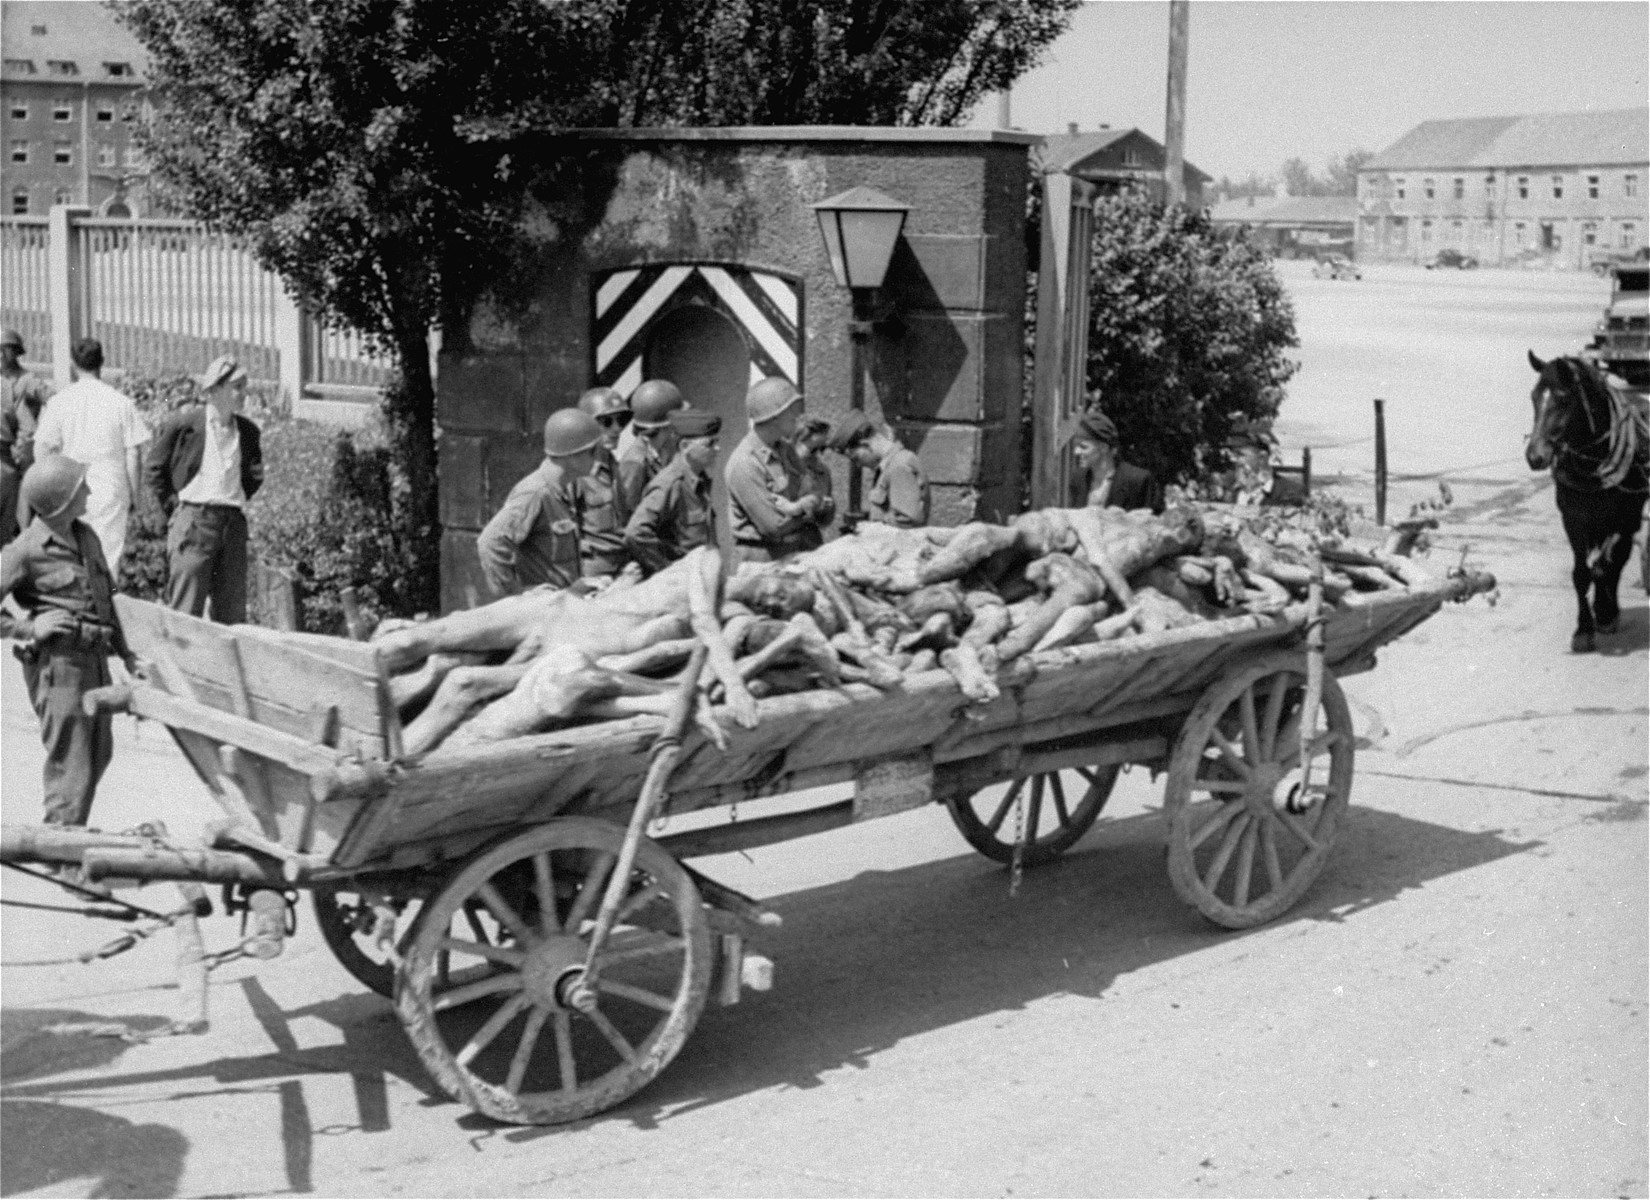 U.S. troops watch a passing cart laden with corpses intended for burial leave the compound of the Dachau concentration camp.  Allied authorities required local farmers to drive their loaded carts through the town of Dachau as an education for the inhabitants.